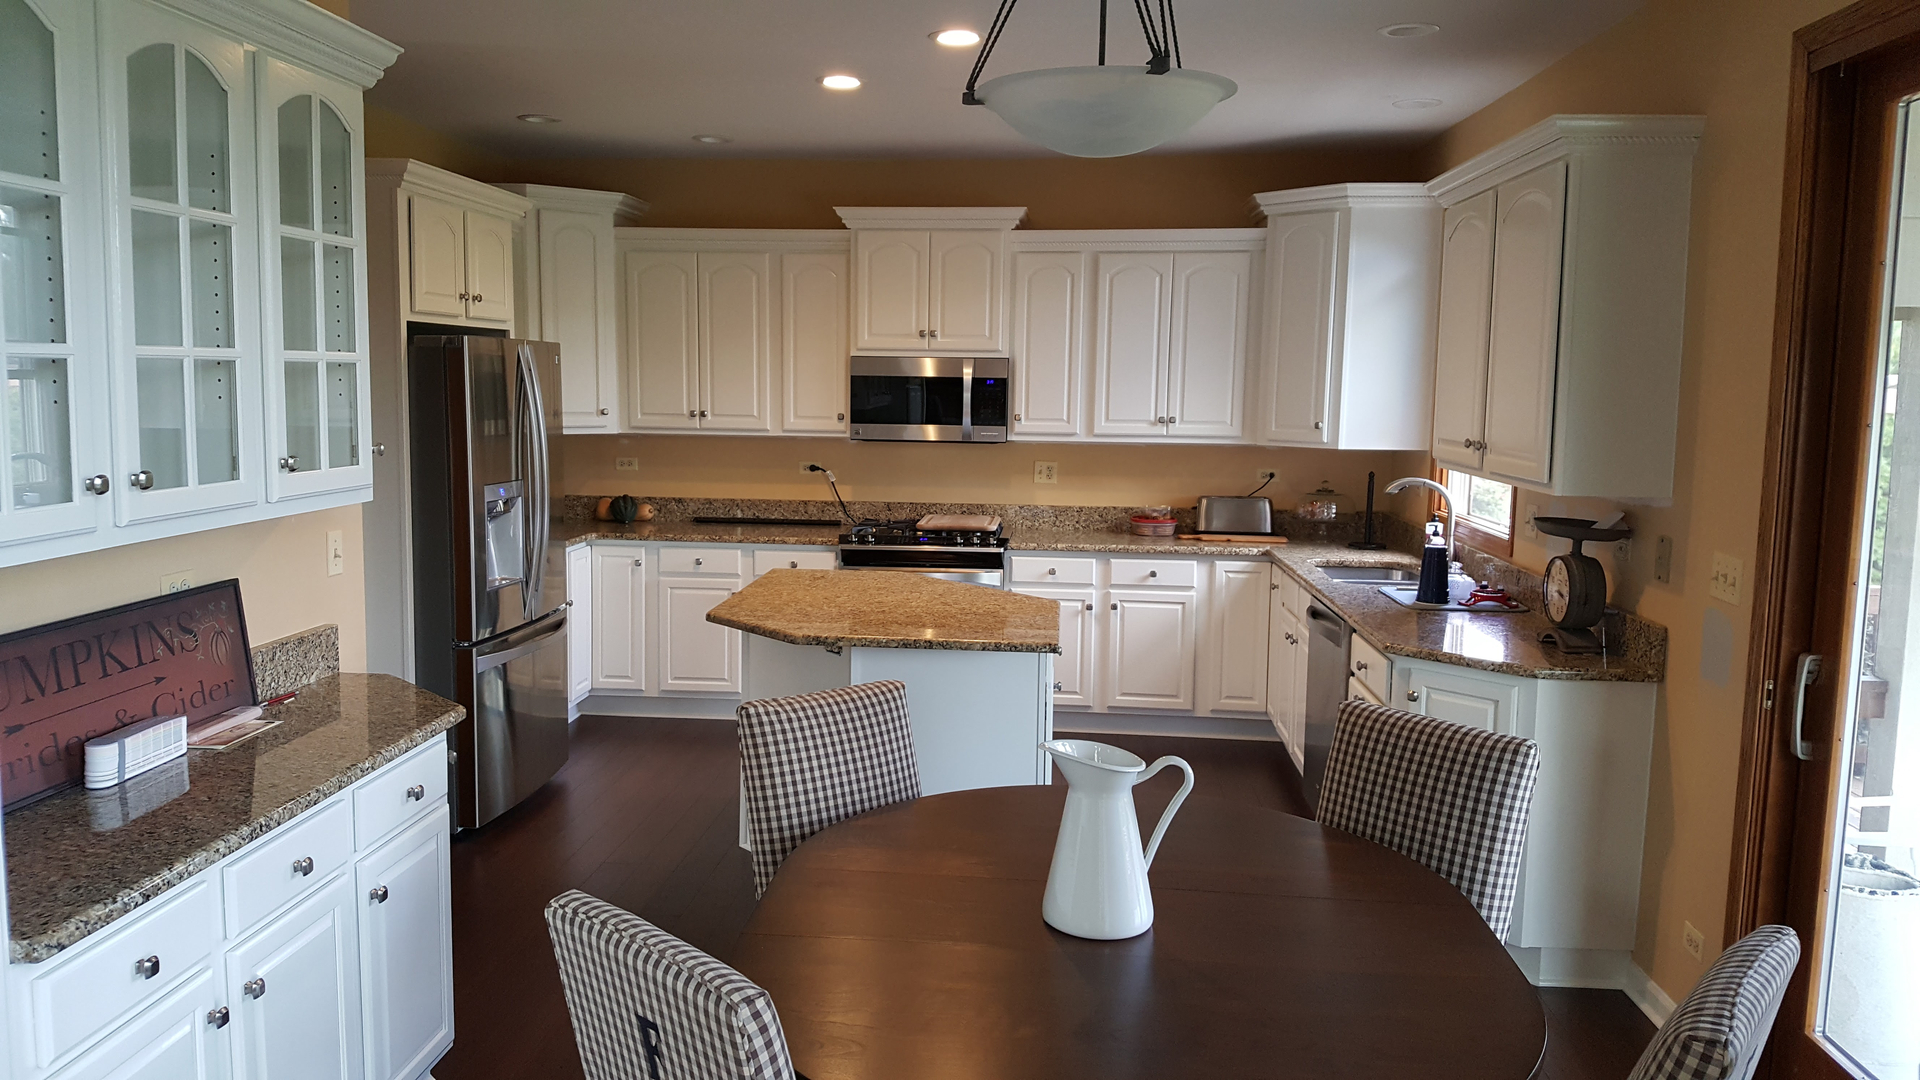 kammes colorworks inc st charles il cabinet refinishing and